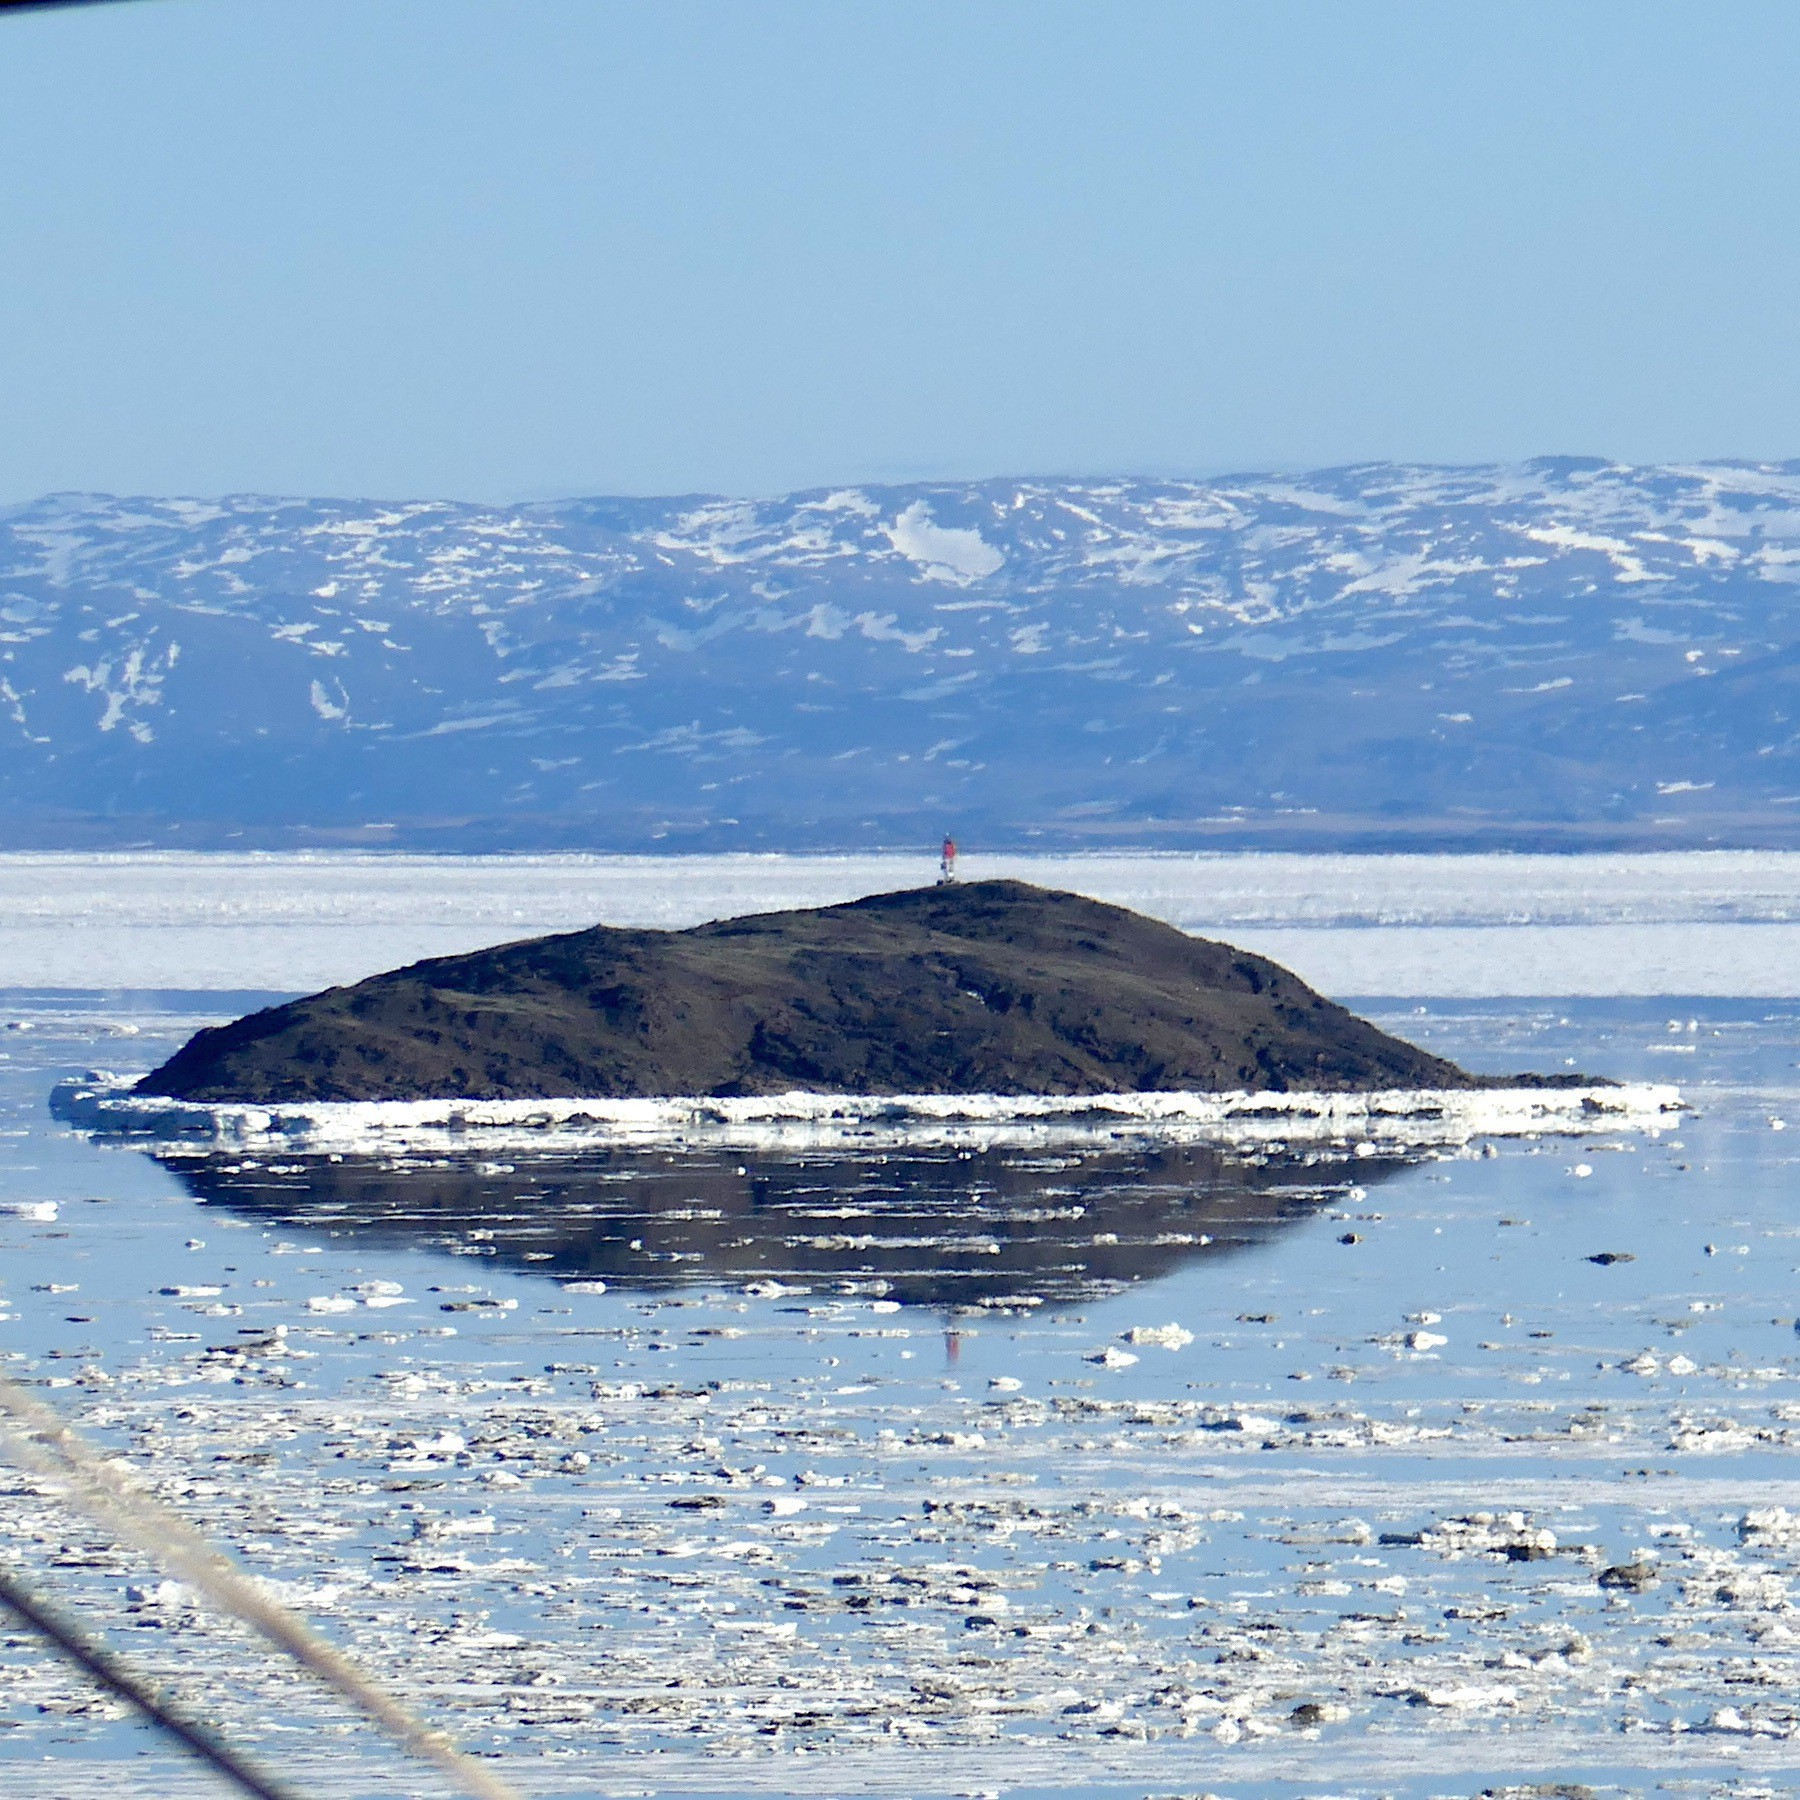 Island in the sea ice, surrounded by reflecting water on the surface; June 18, 2019